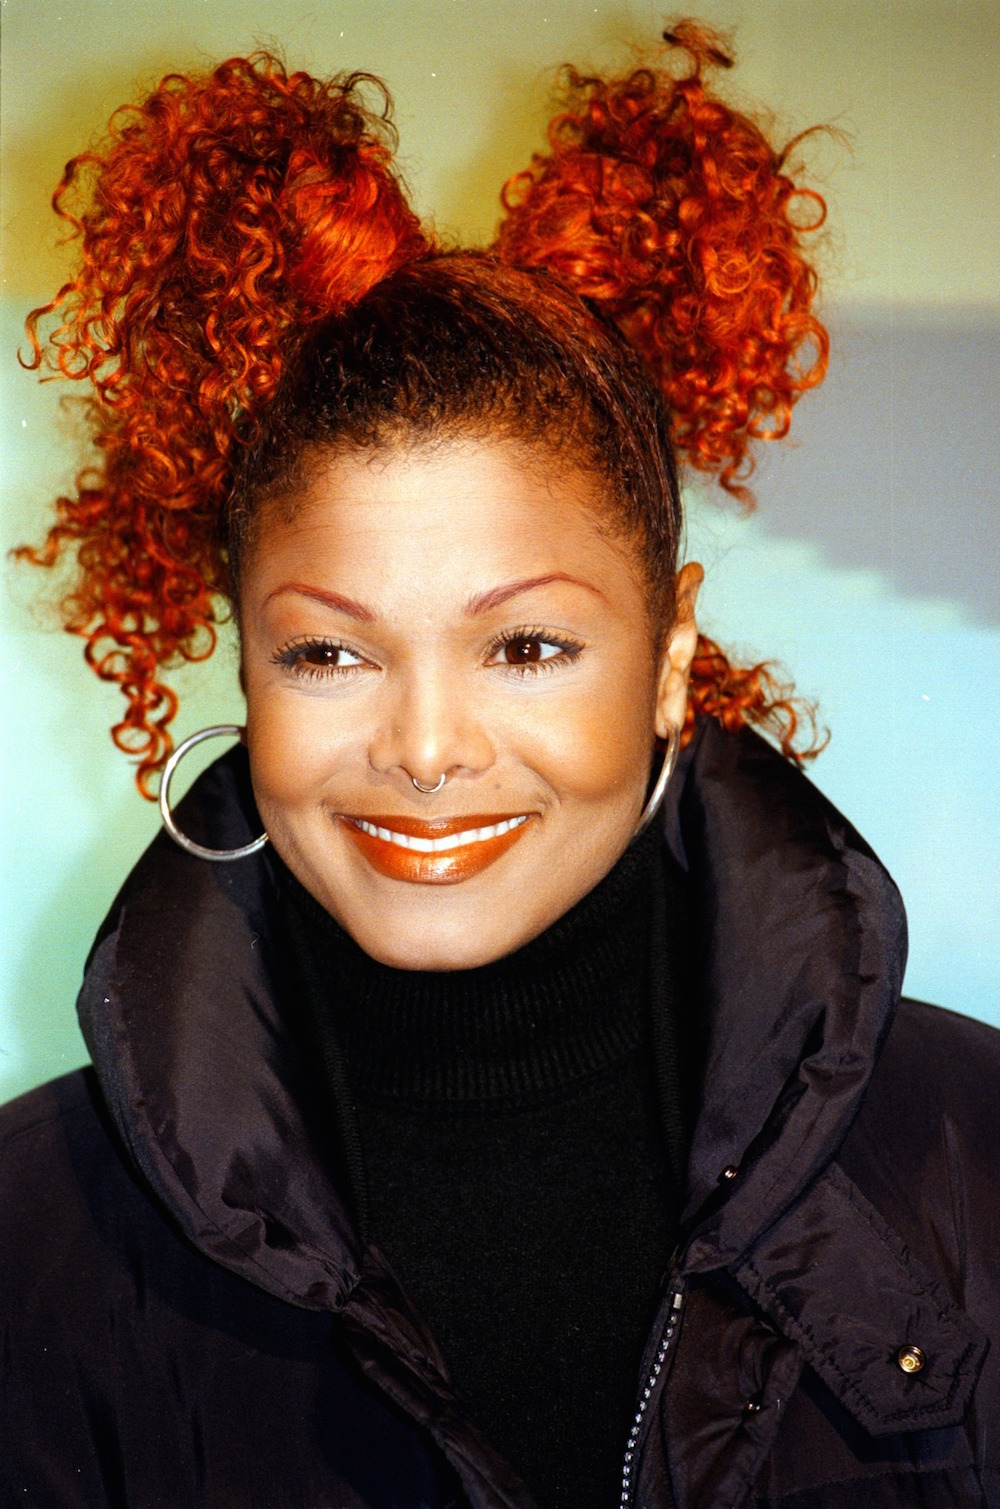 Janet Jackson Reveals Slim New Figure In Nutrisystem Ad (PHOTO)